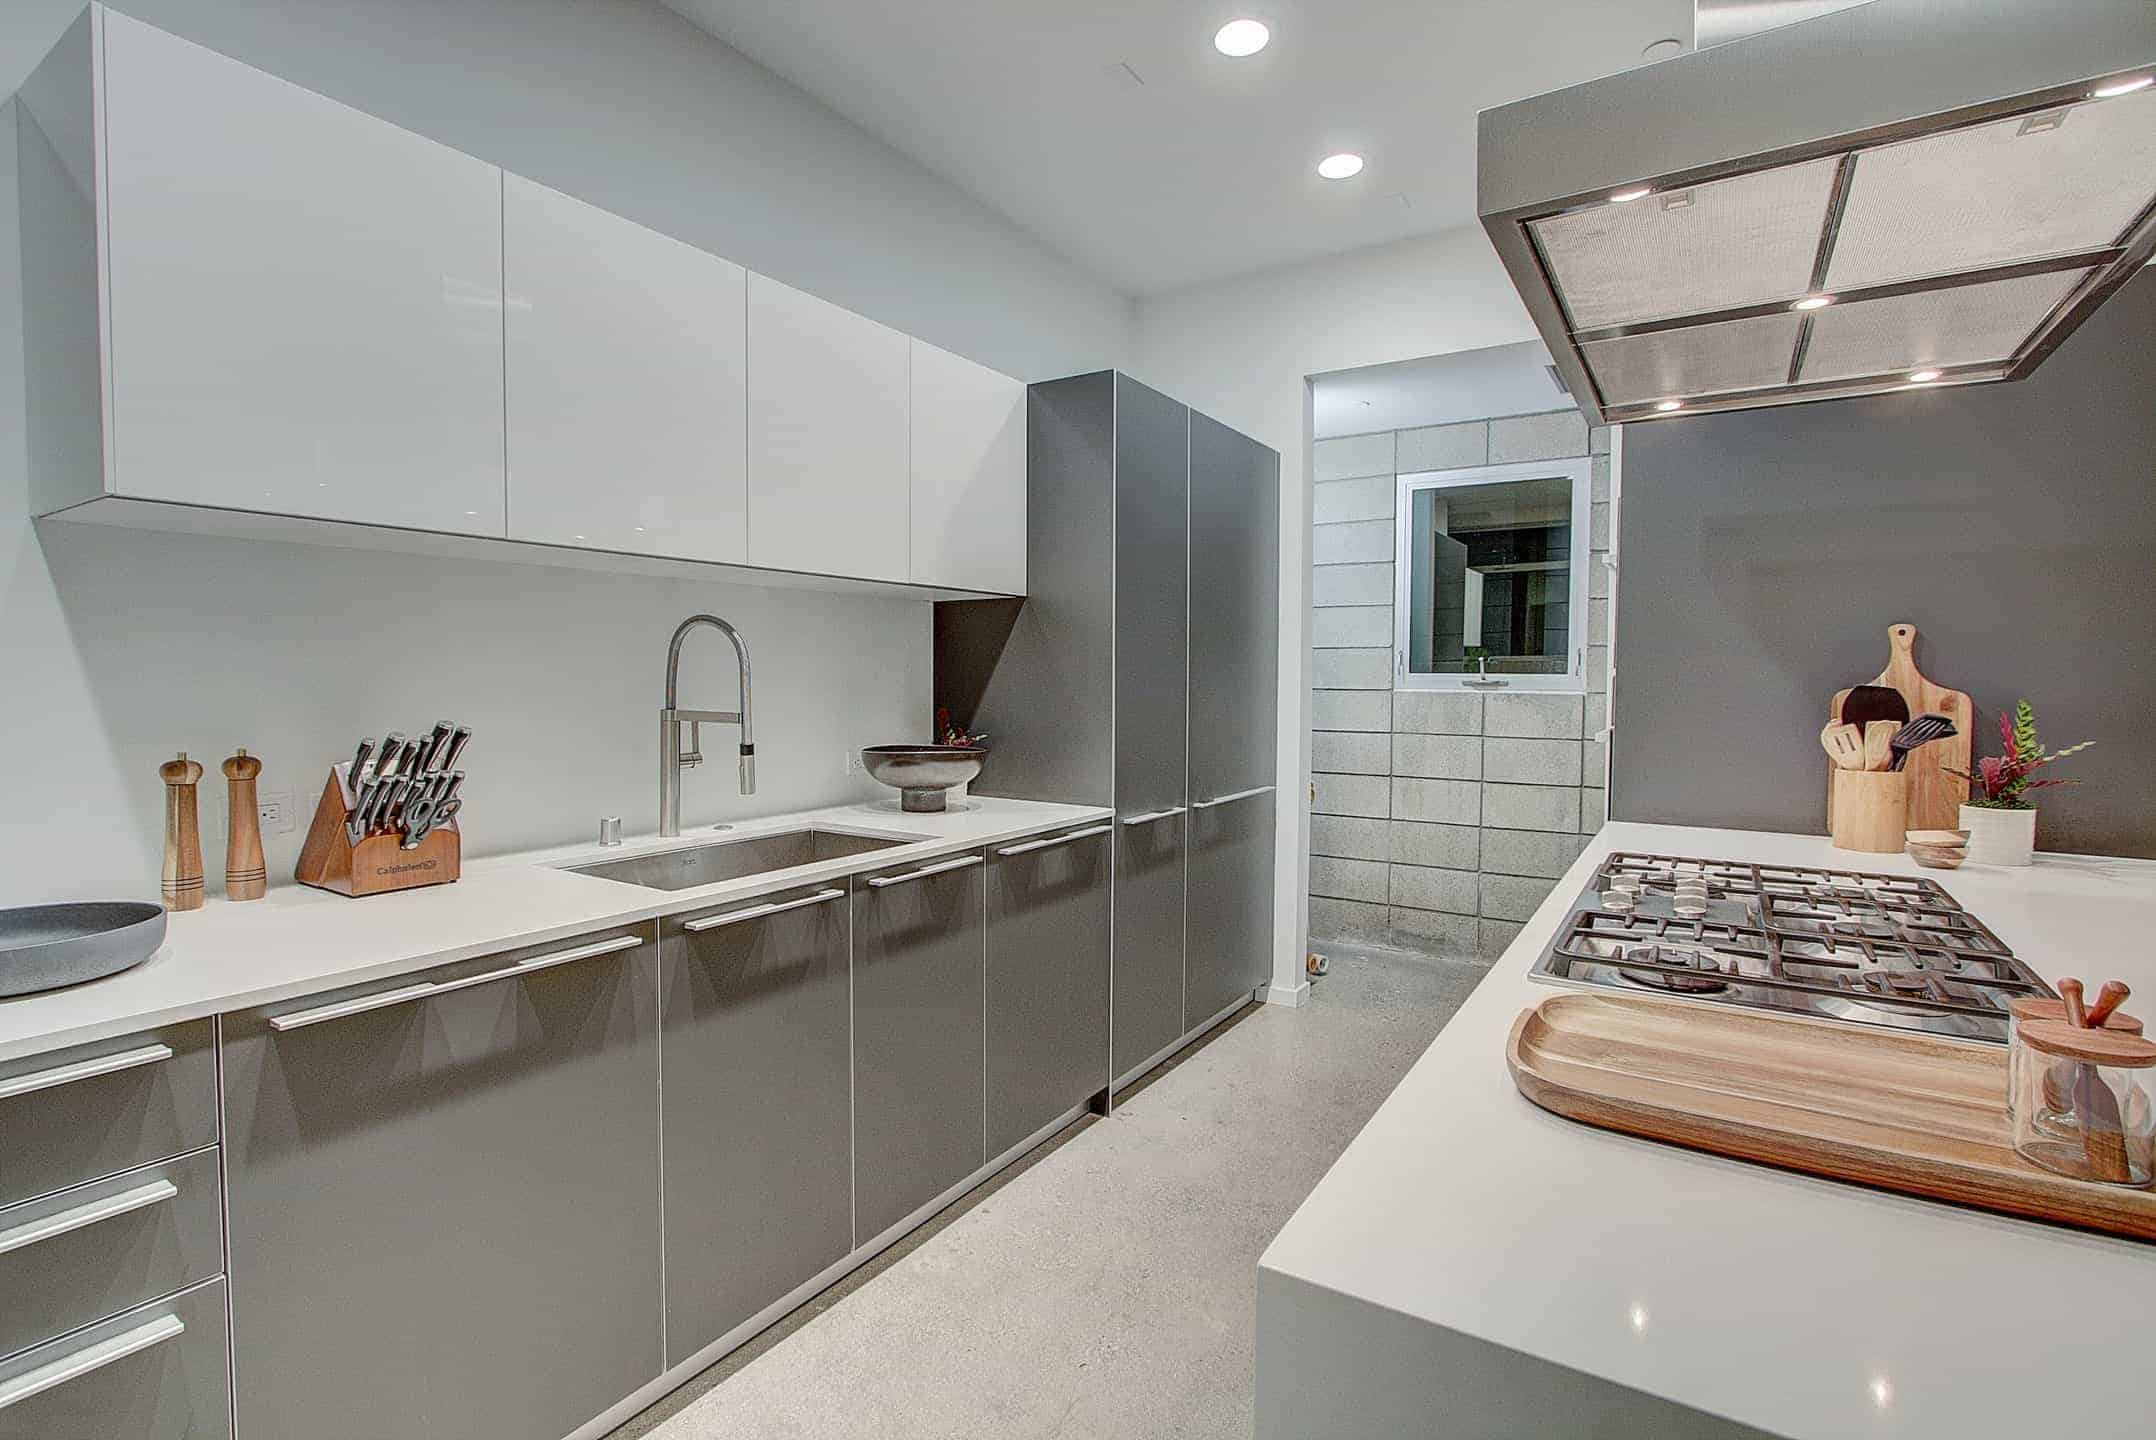 A kitchen featuring gray kitchen counters and center island both with smooth white countertops and lighted by recessed ceiling lights.